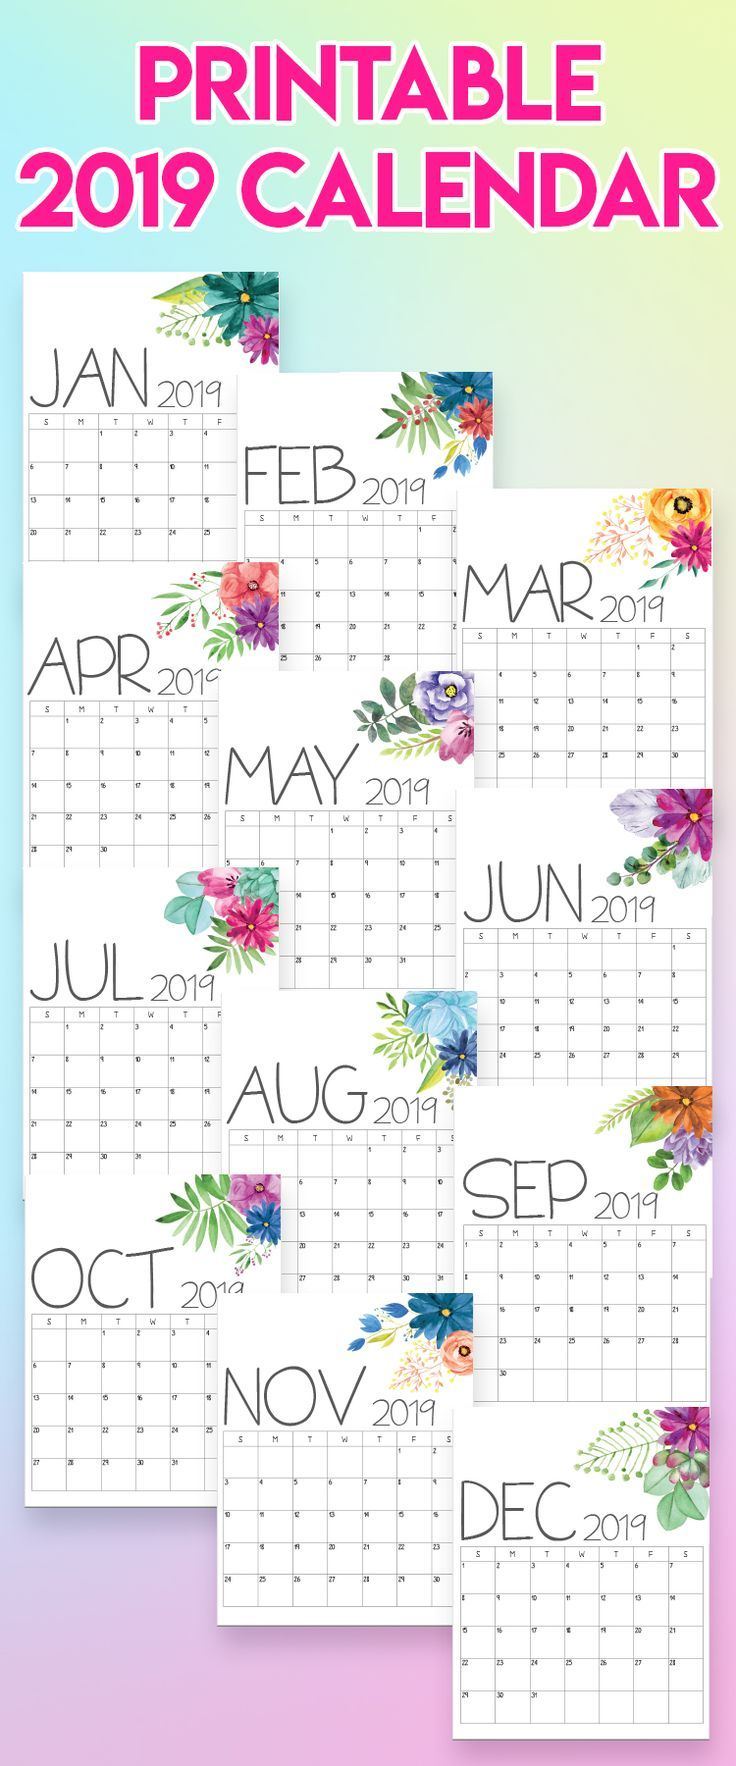 2019 Printable Calendars and Planners | Calendars ...